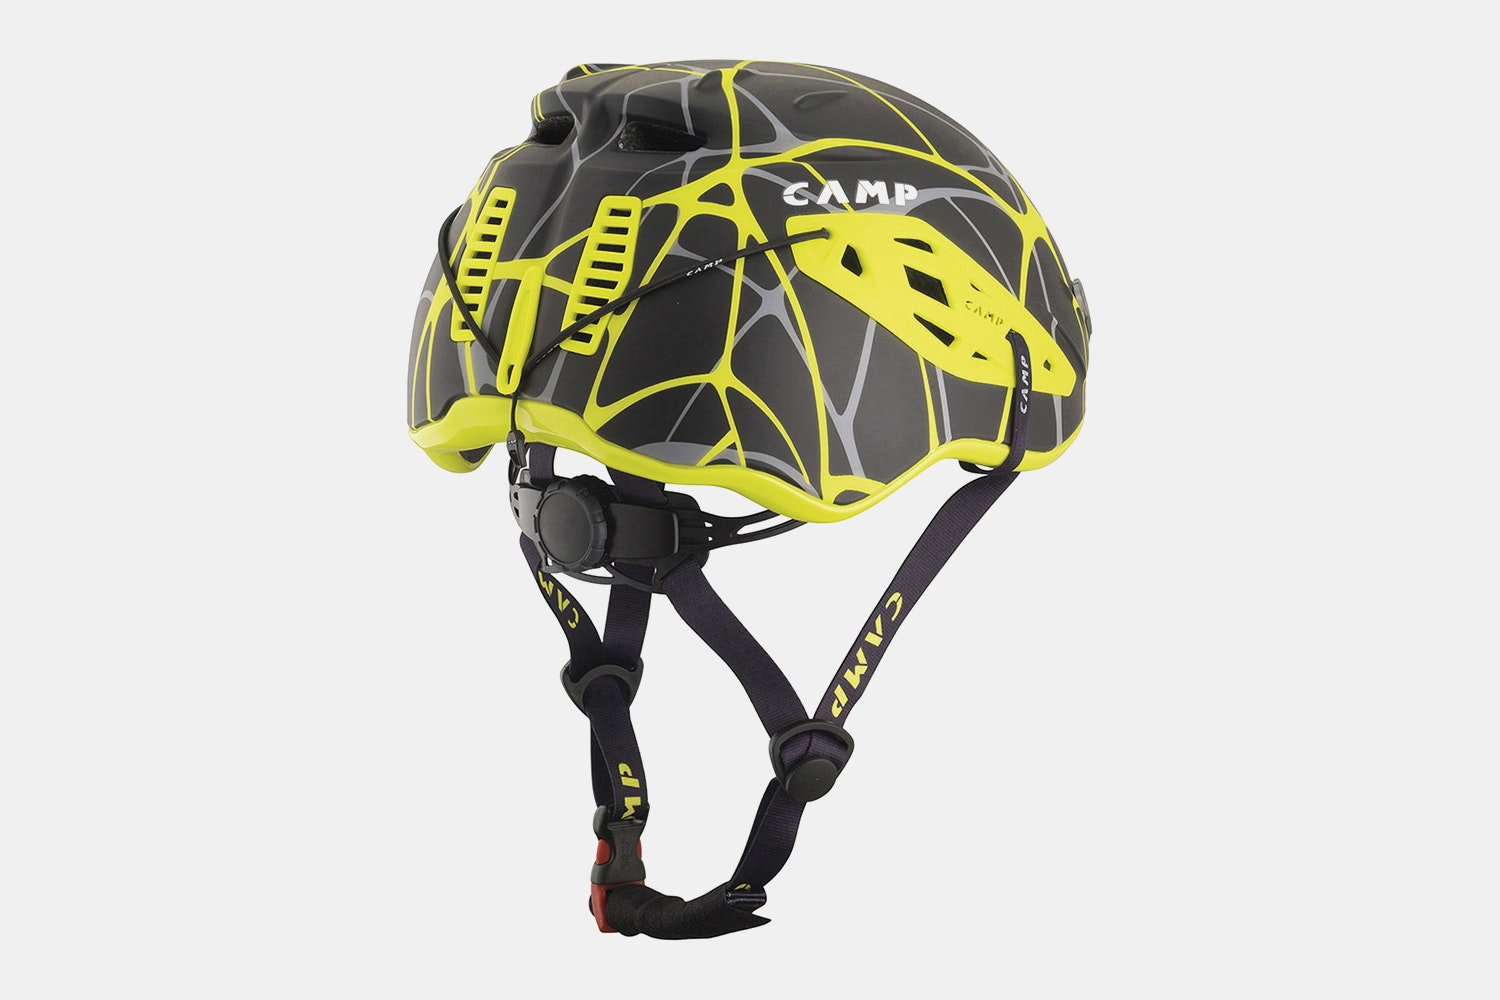 Speed Comp Helmet – Black (+ $12)